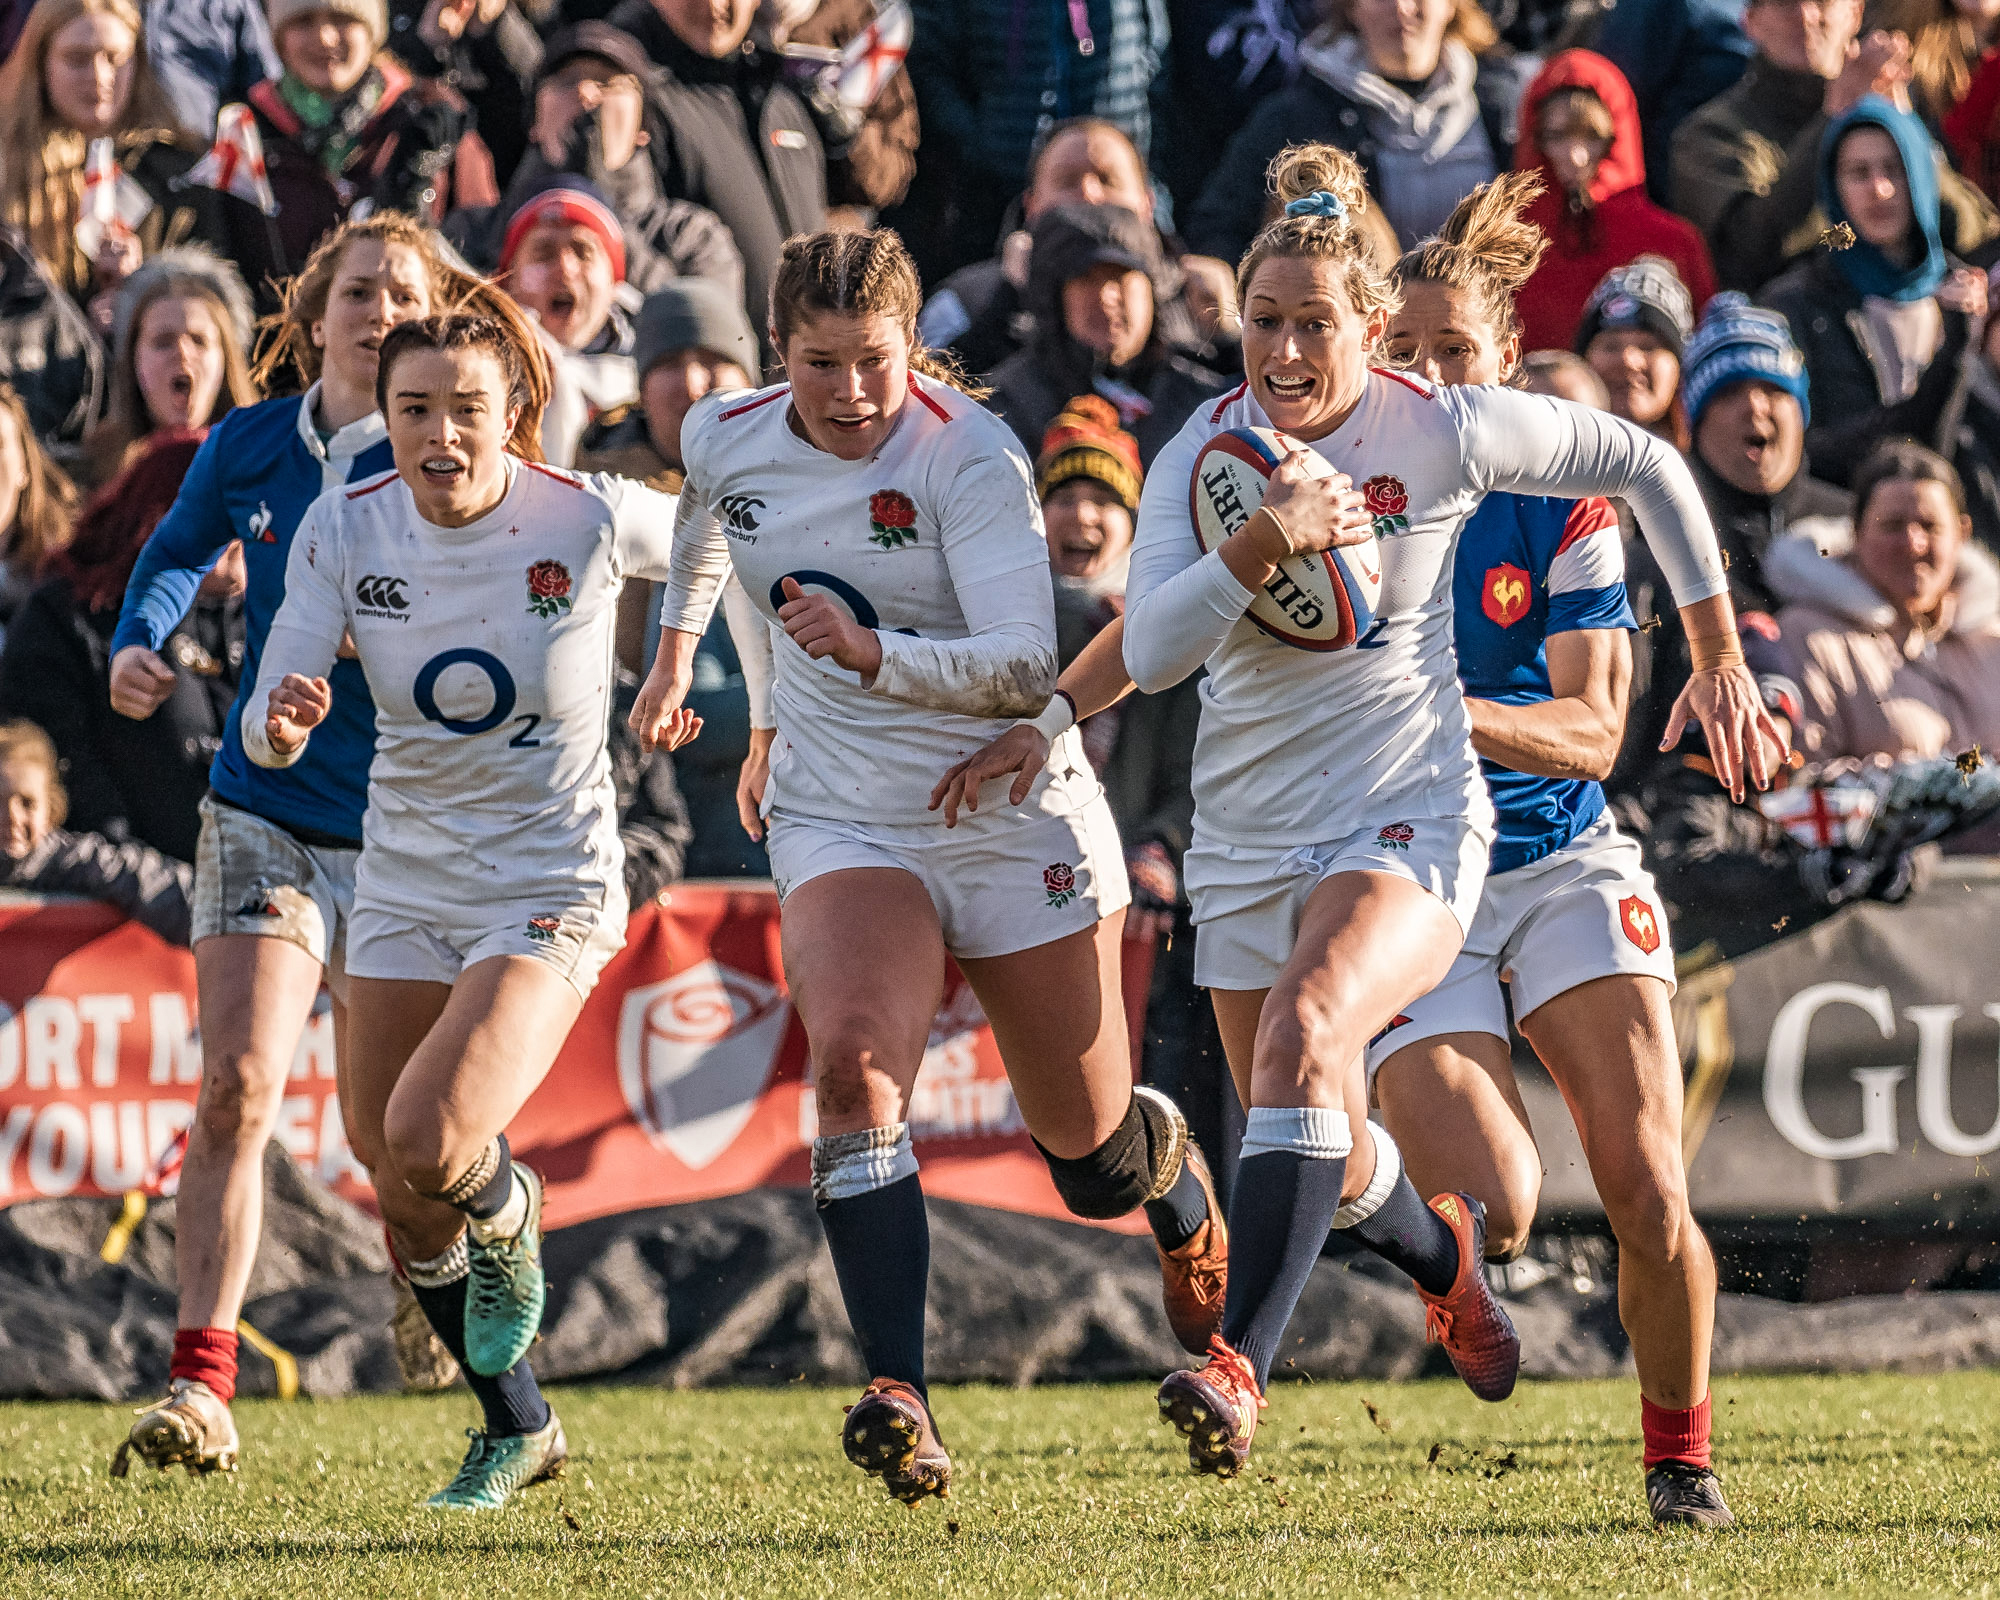 Kelly Smith, Jess Breach and Natasha Hunt in a joyous second half run that didn't quite end in a try